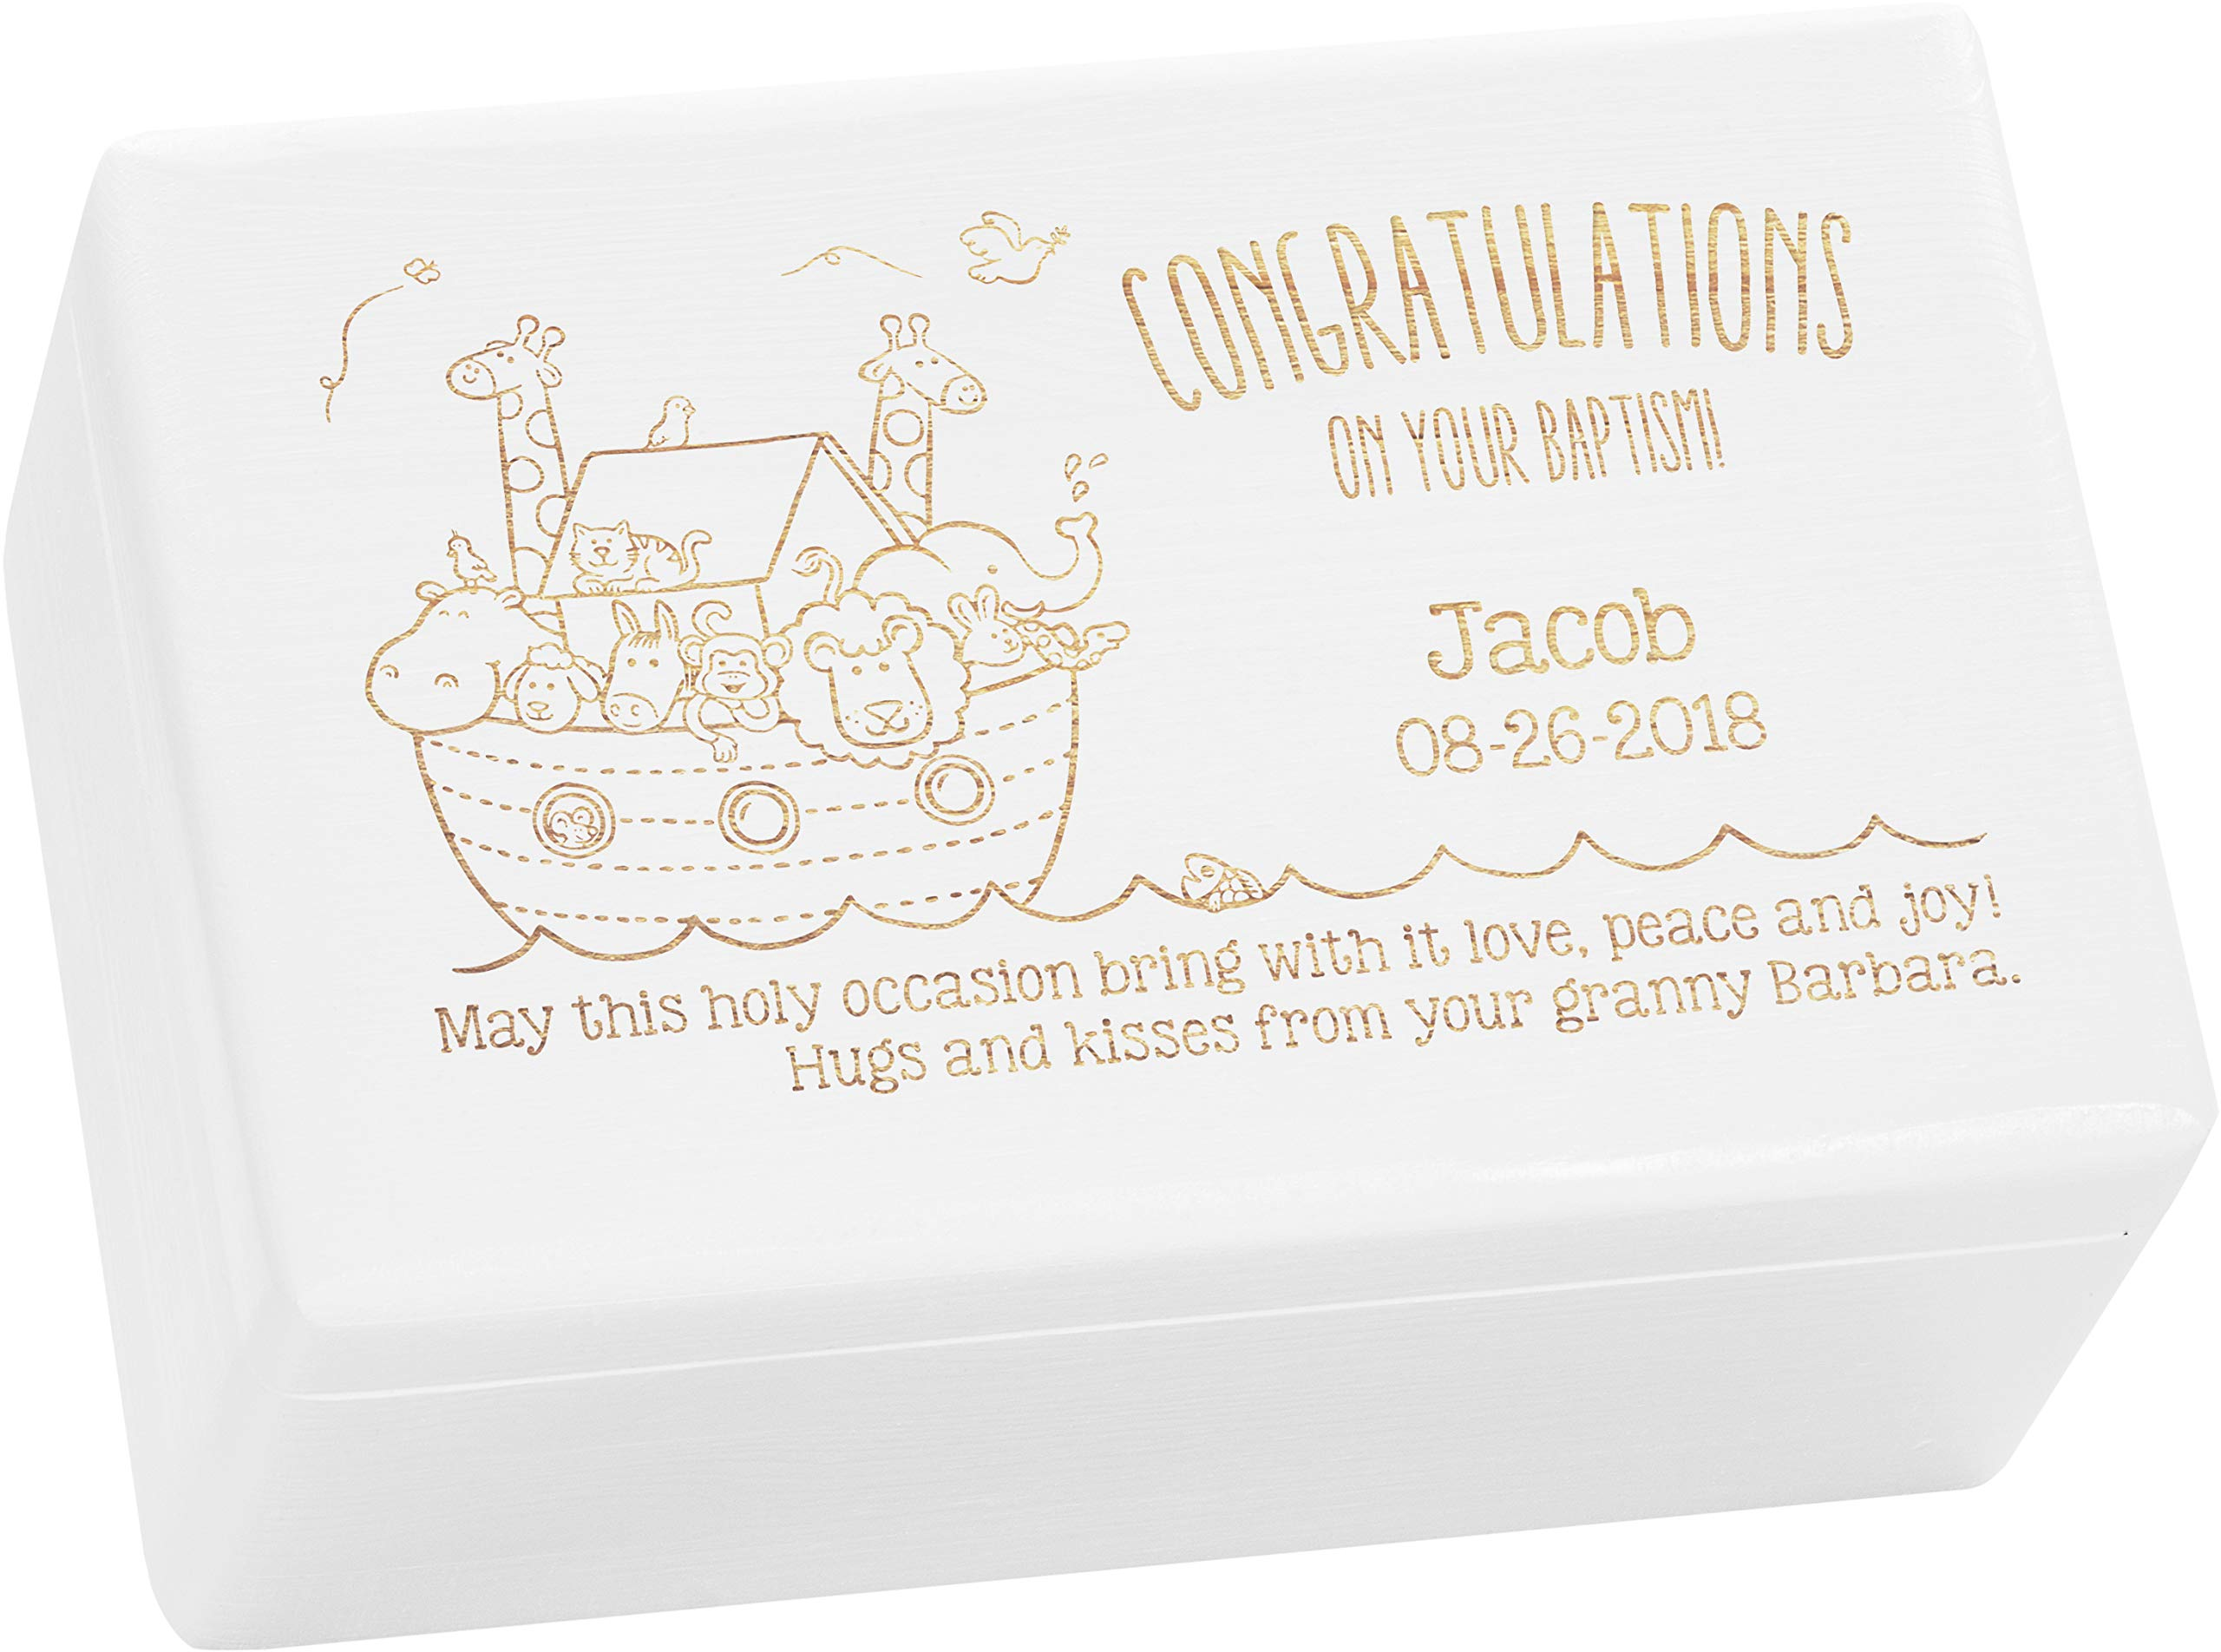 LAUBLUST Engraved Wooden Gift Box - Size L, 12x8x6in - ❤️ Personalized ❤️ Baptism Keepsake Box - Noah's Ark | Painted White - Made in Germany